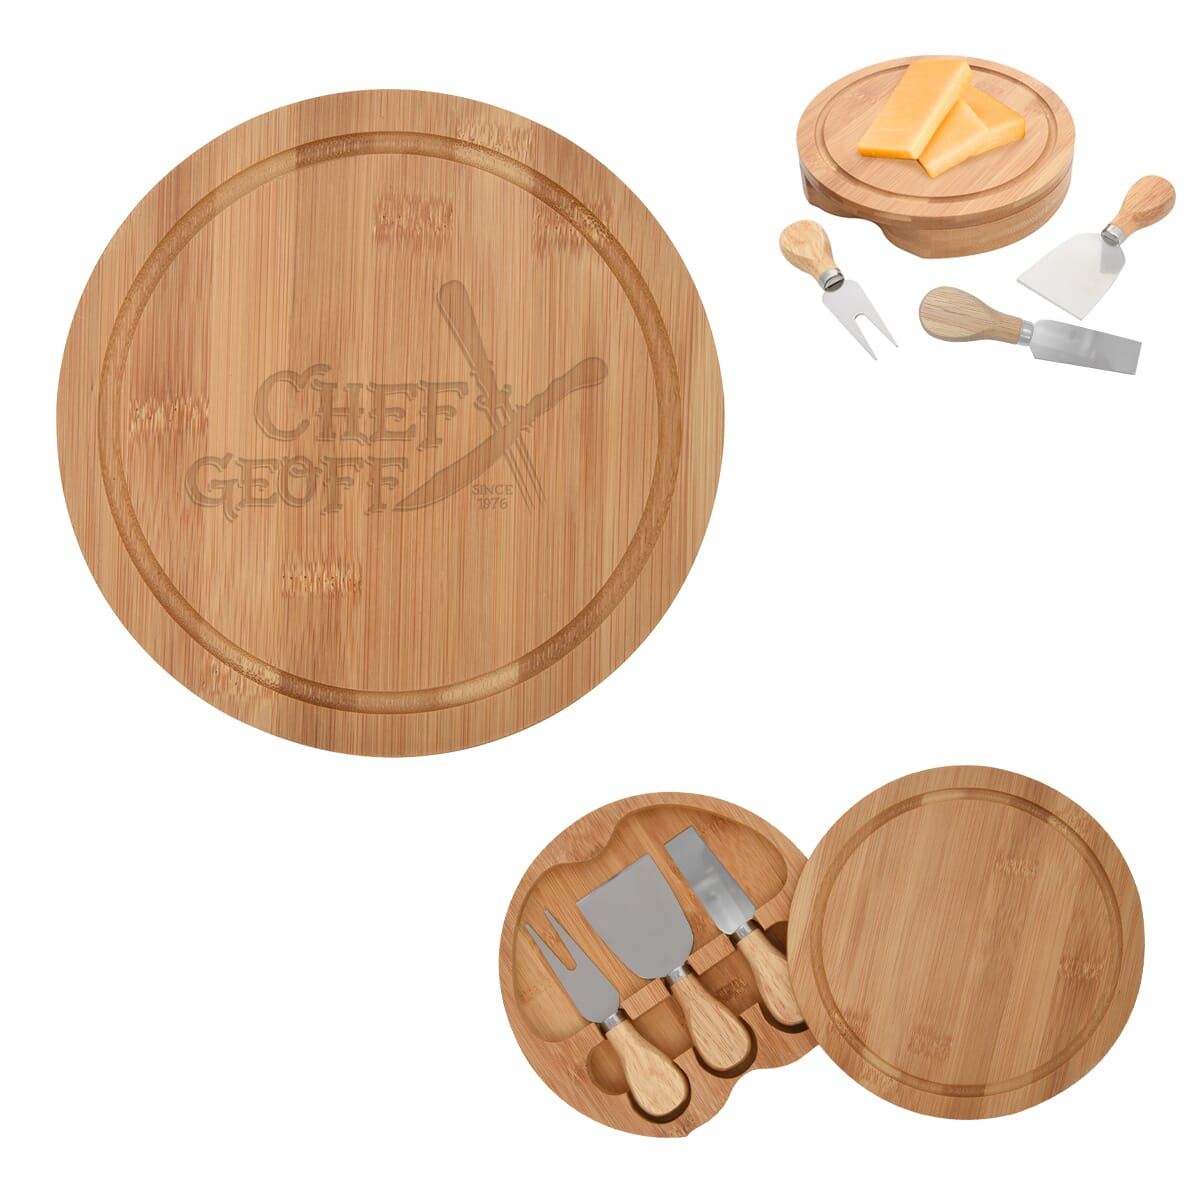 Bamboo cheese server gift set